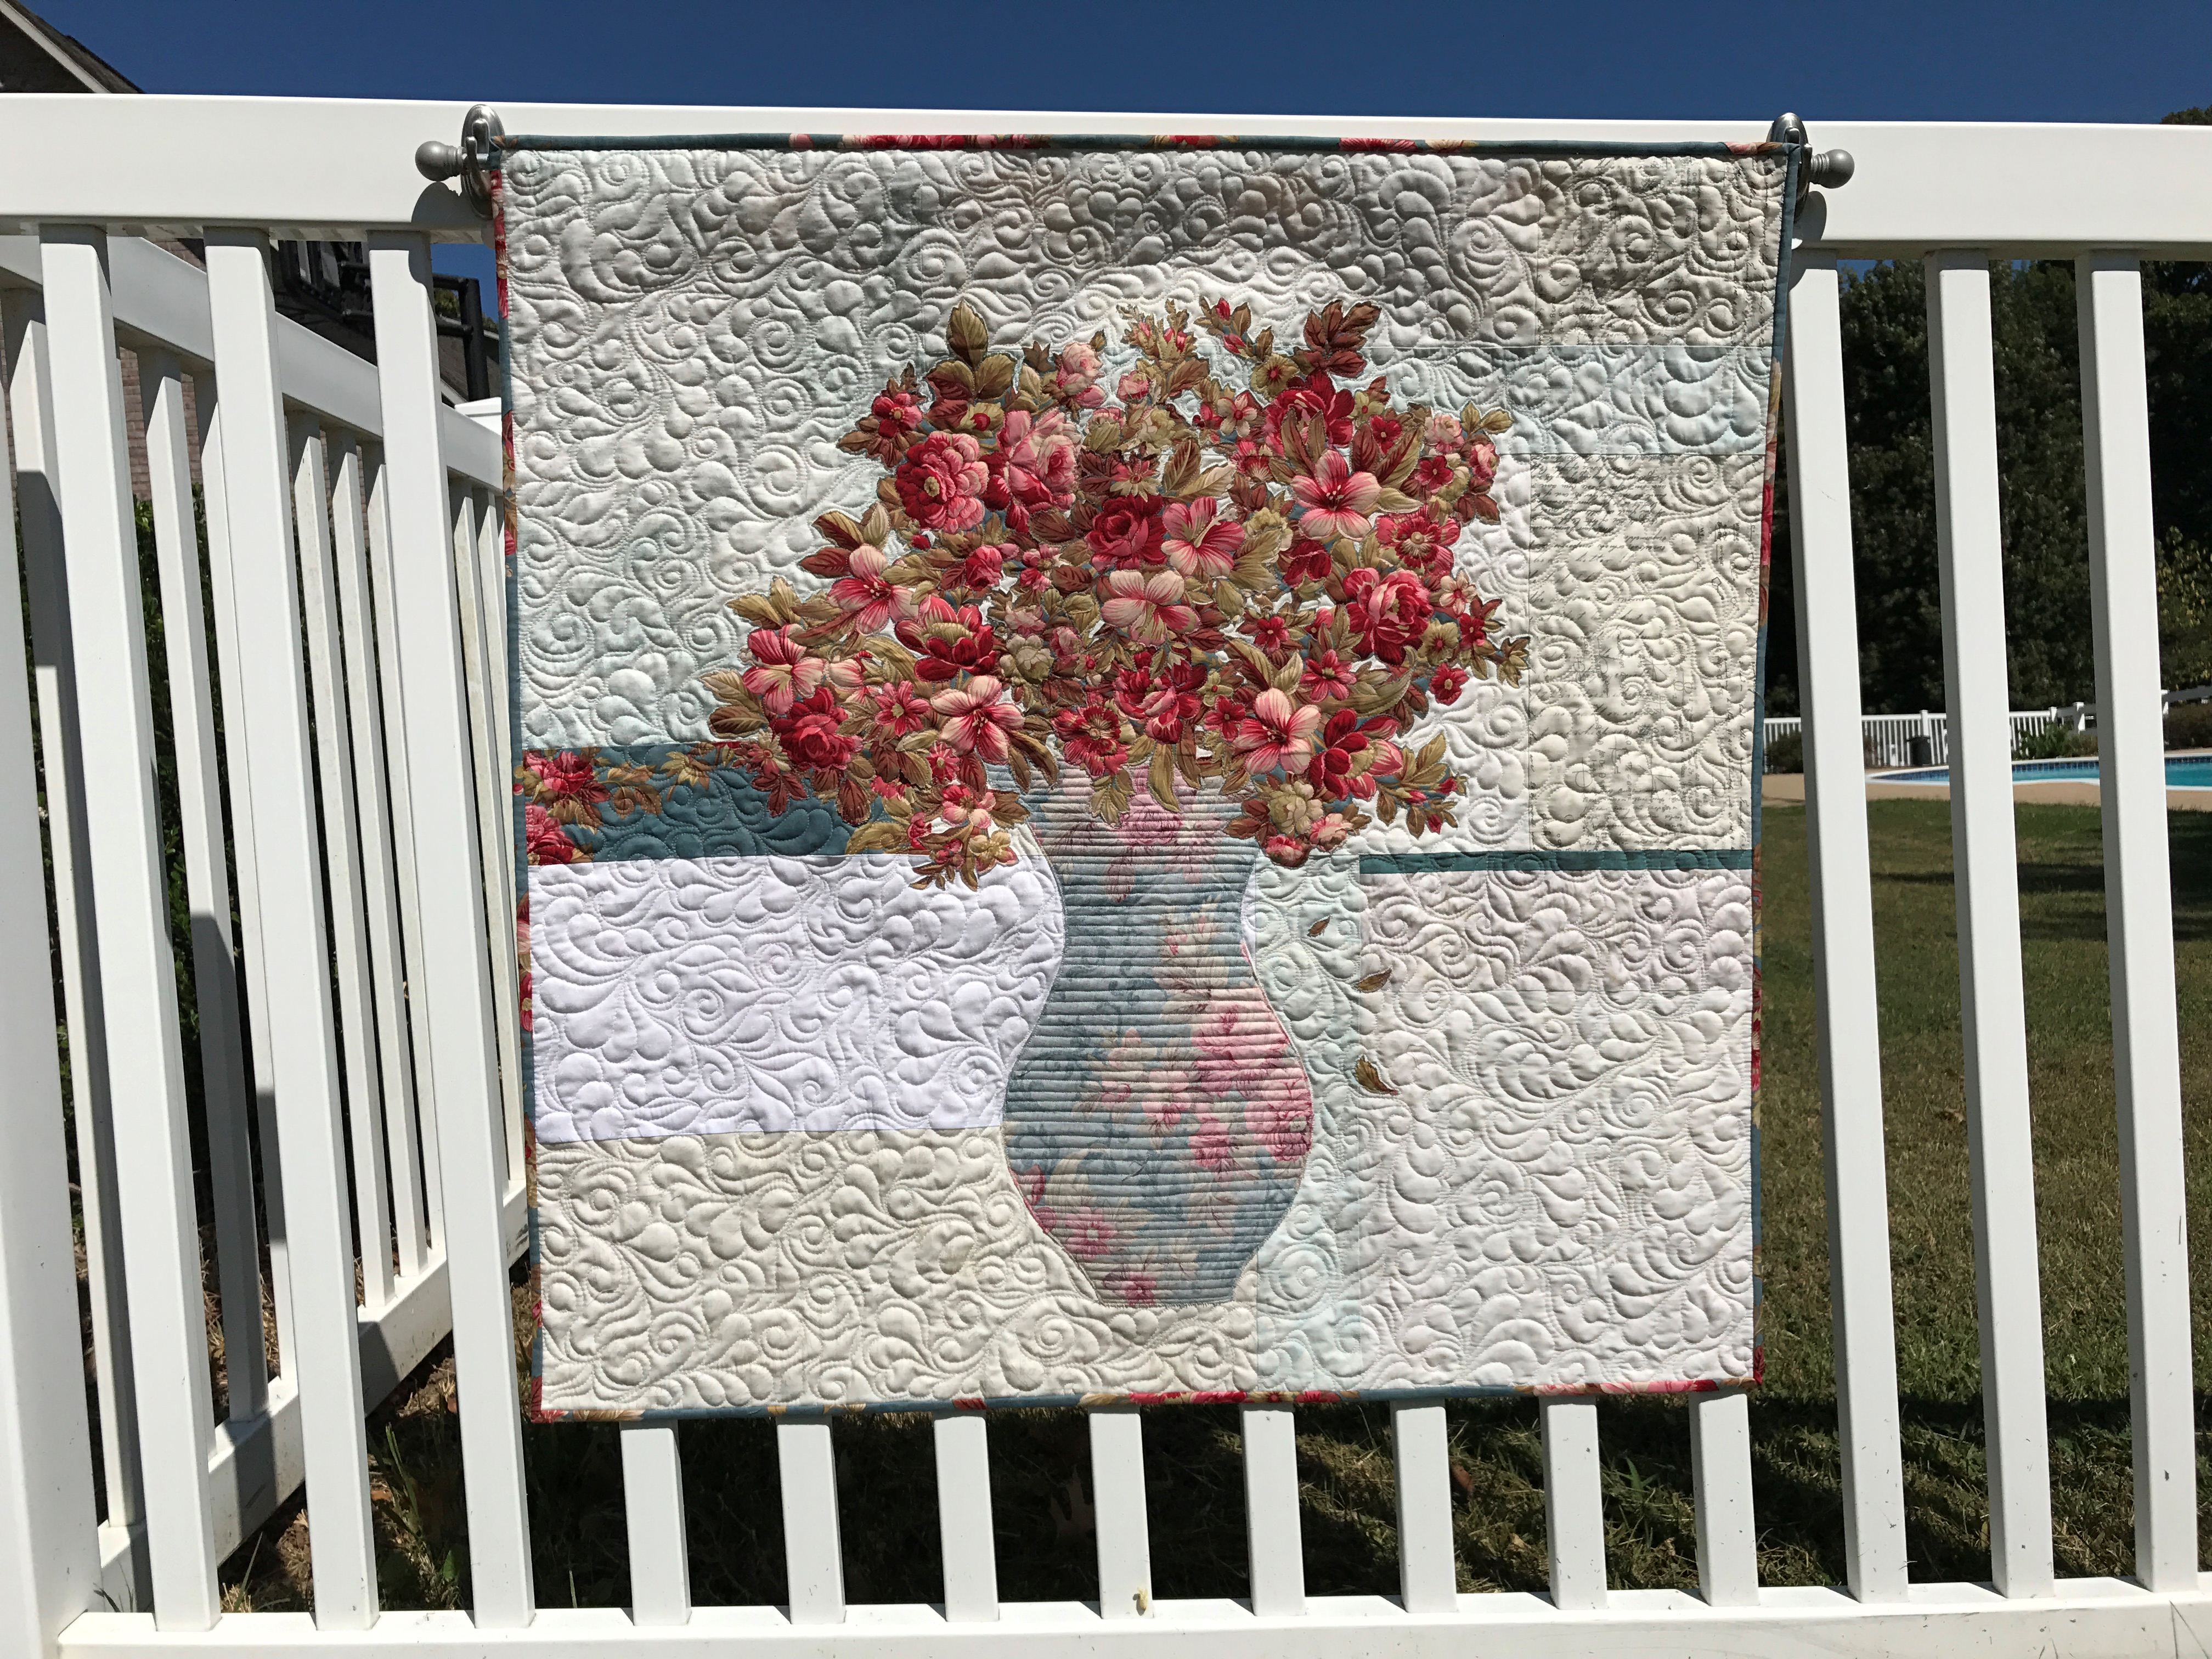 Image of Quilt Hanging on Fence